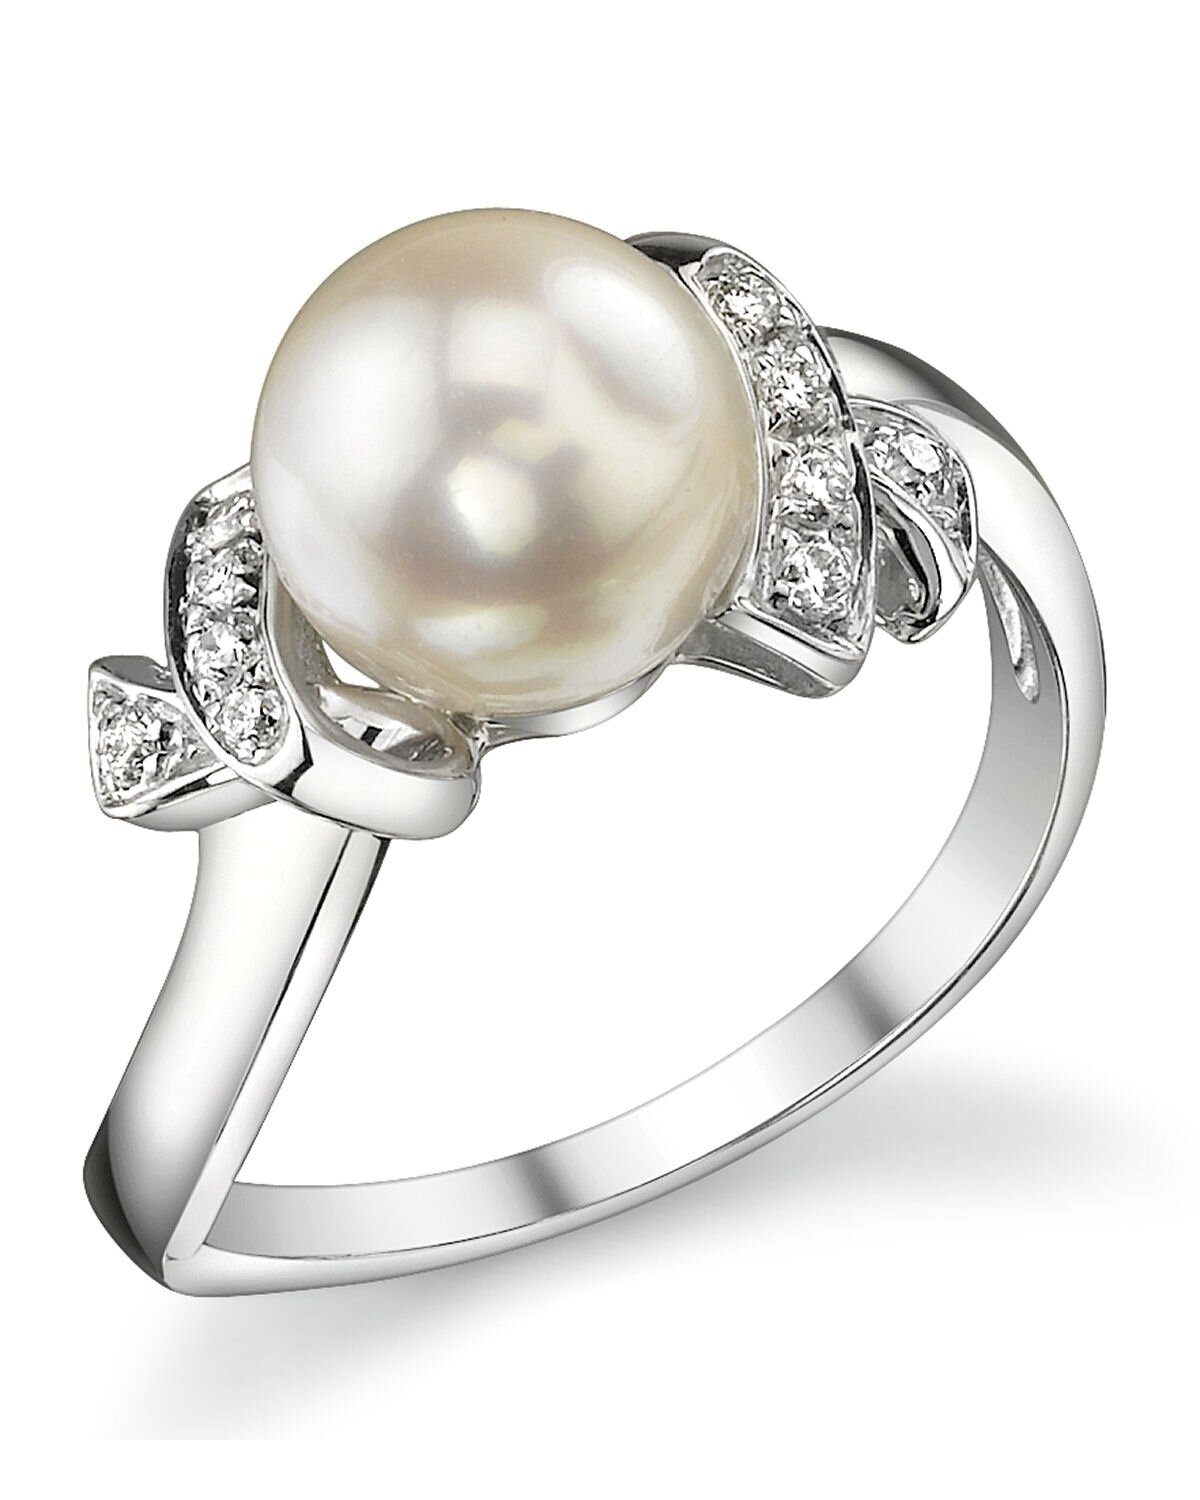 diamond rings cool diamond rings different designs the new models of ...